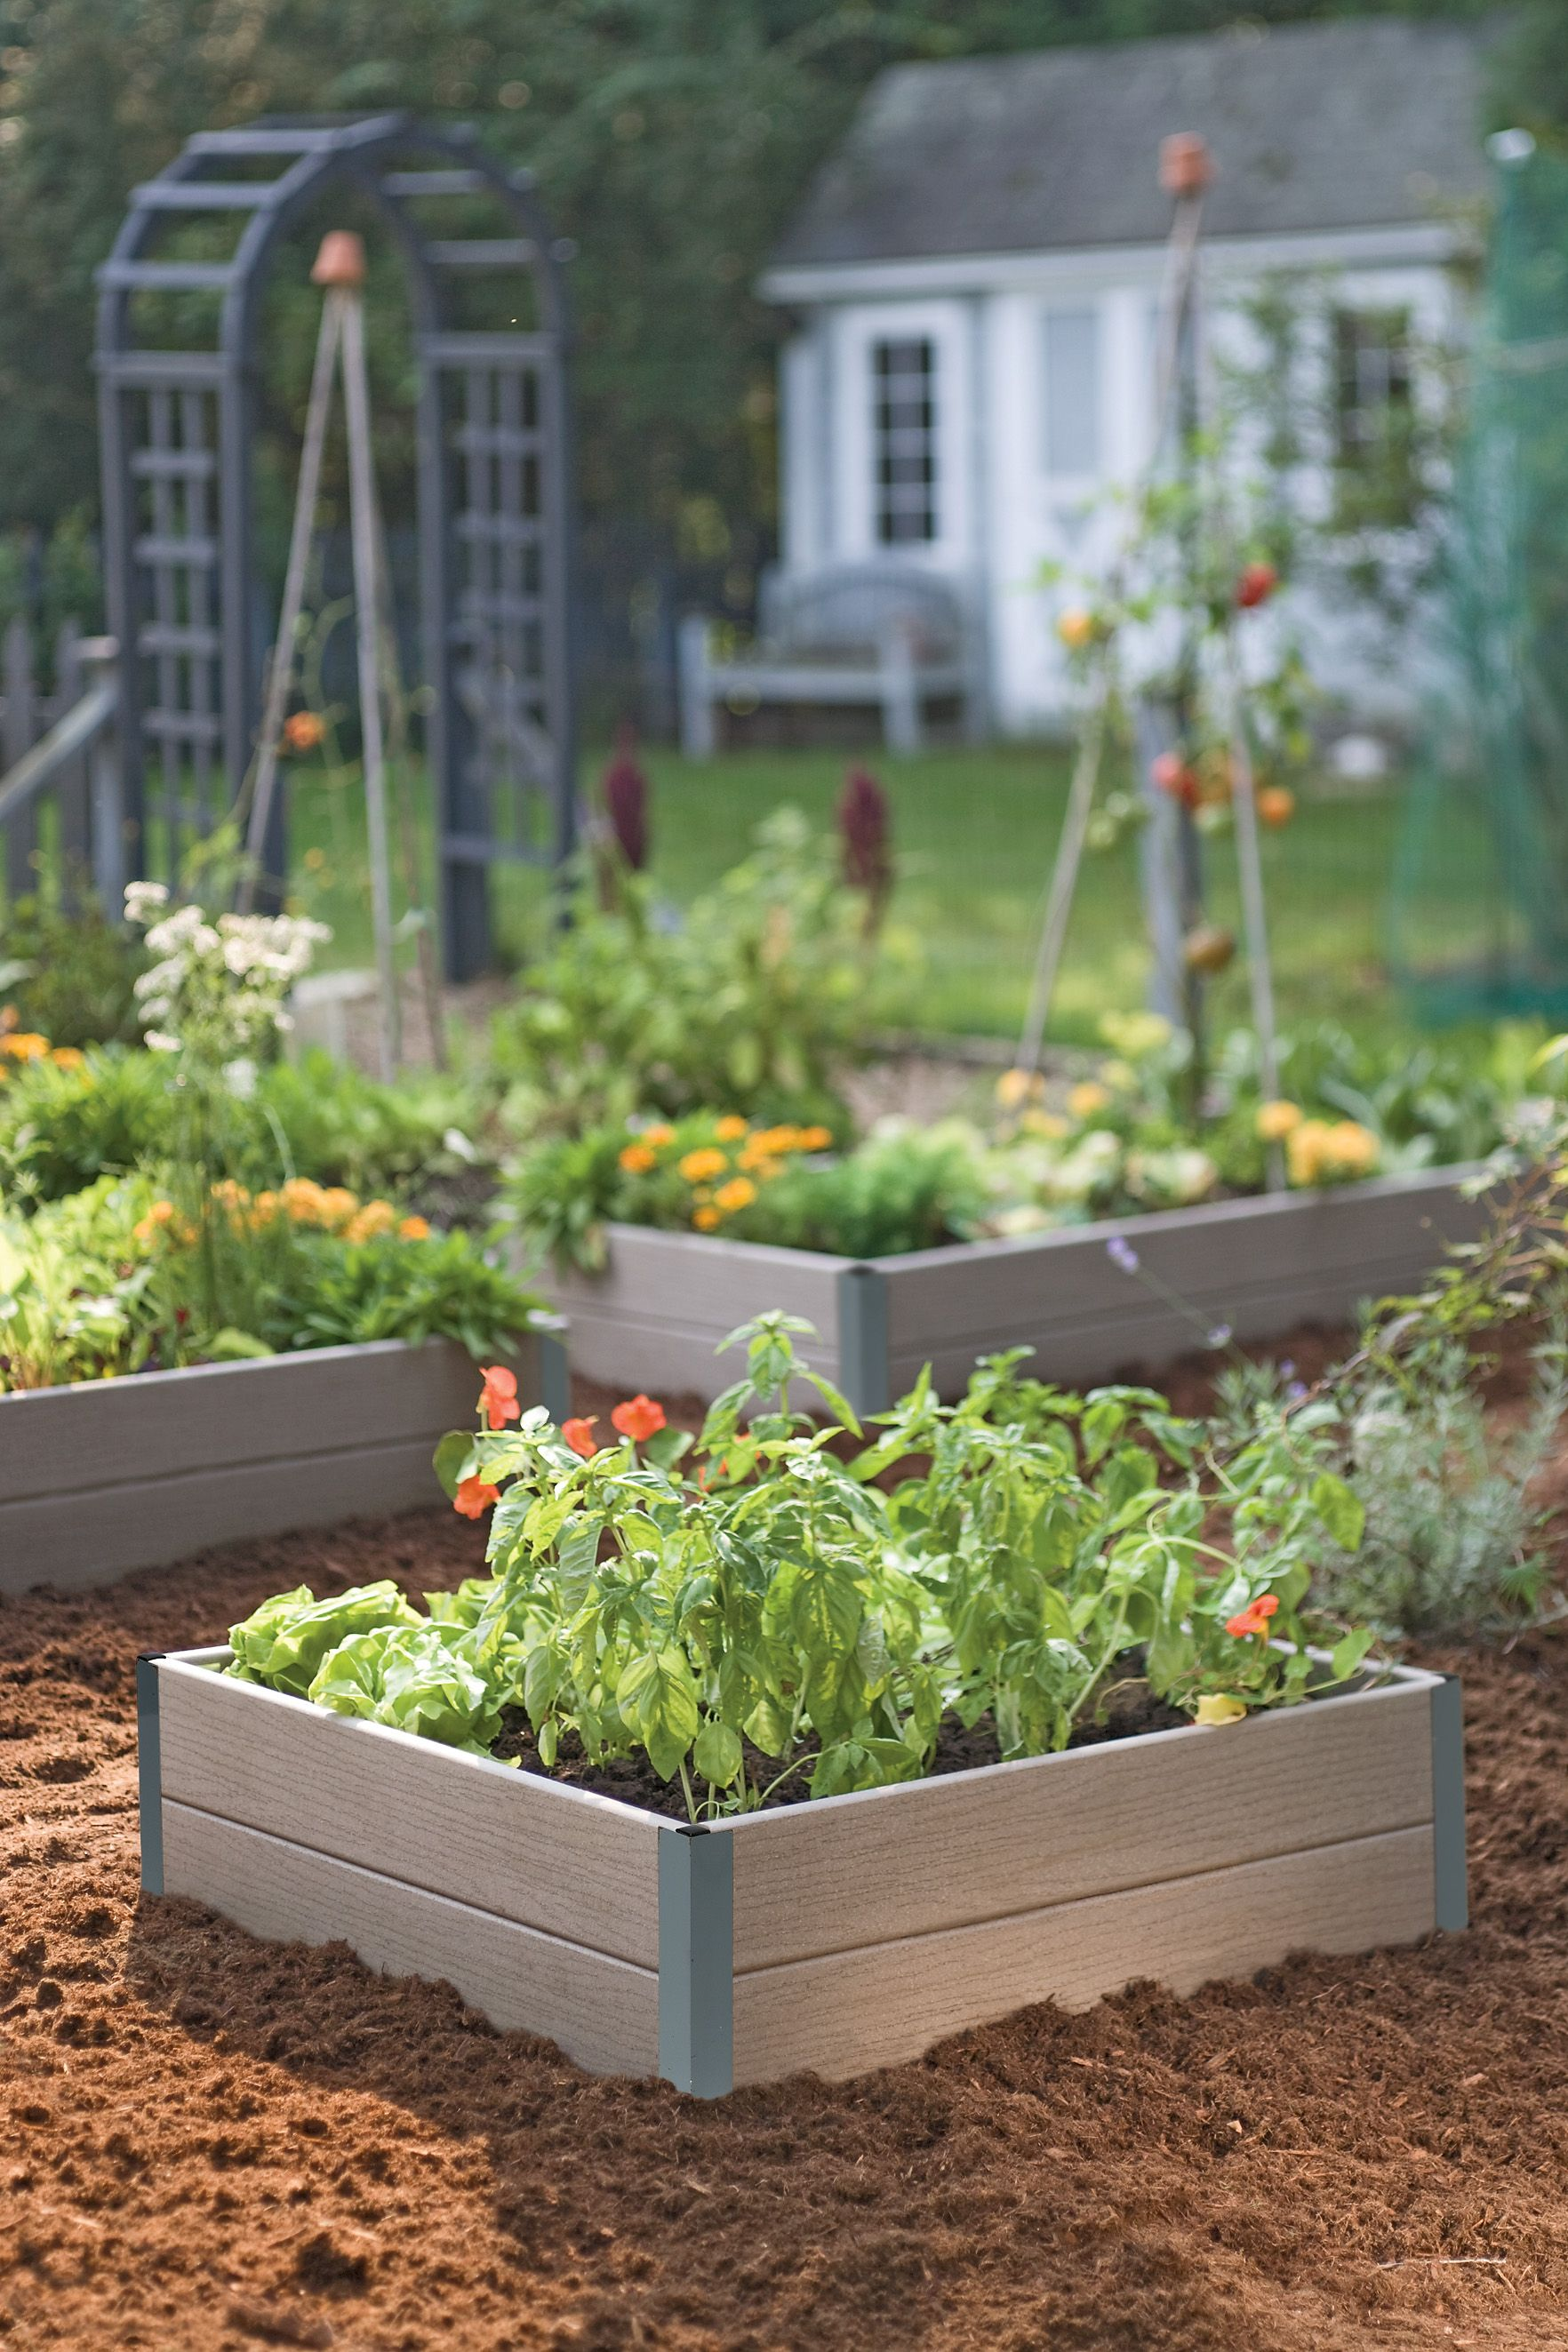 Website   My Raised Bed Vegetable Garden   Florida Gardening Made Simple.